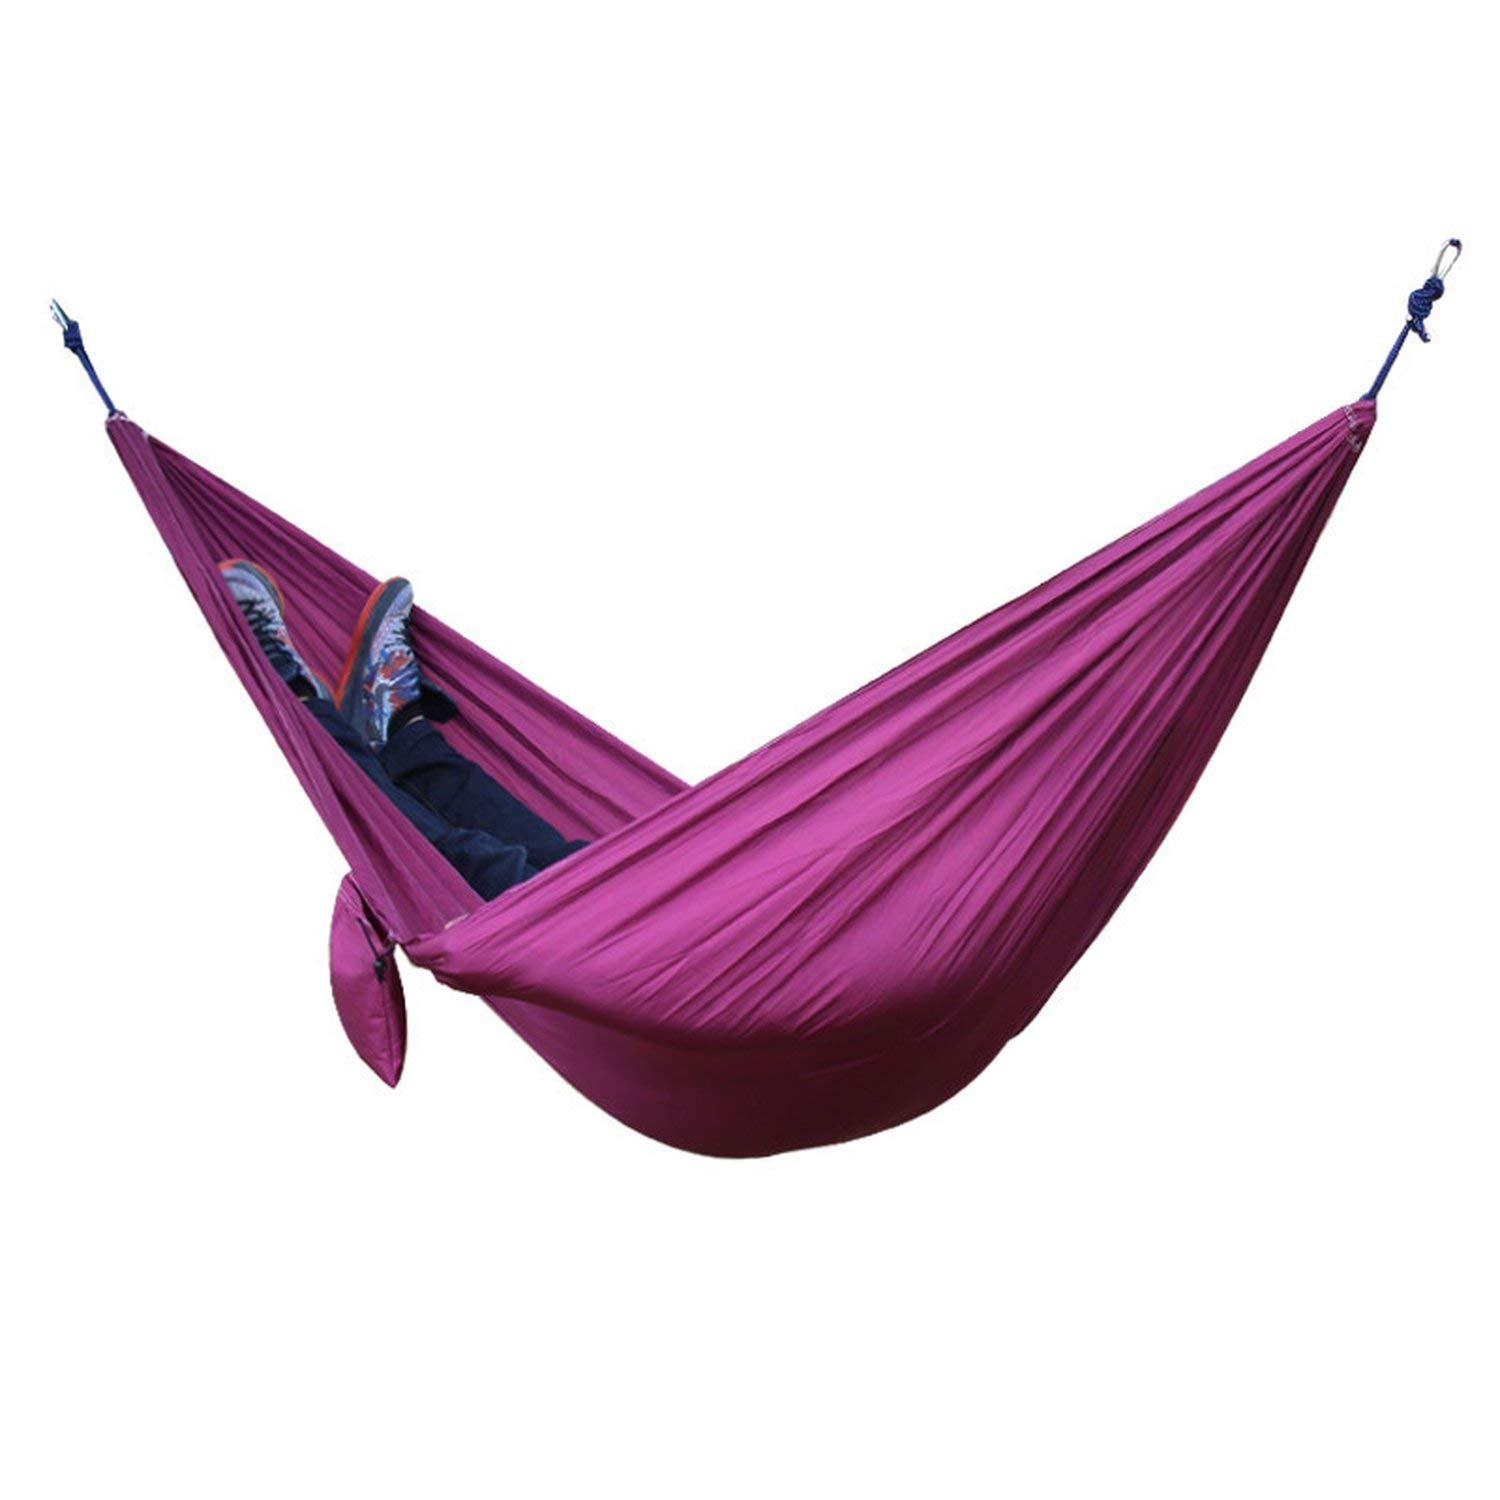 Mandaartins 24 Color 2 People Portable Parachute Hammock Camping Survival Garden Flyknit Hunting Leisure Hamac Travel Double Person Hamak,purple